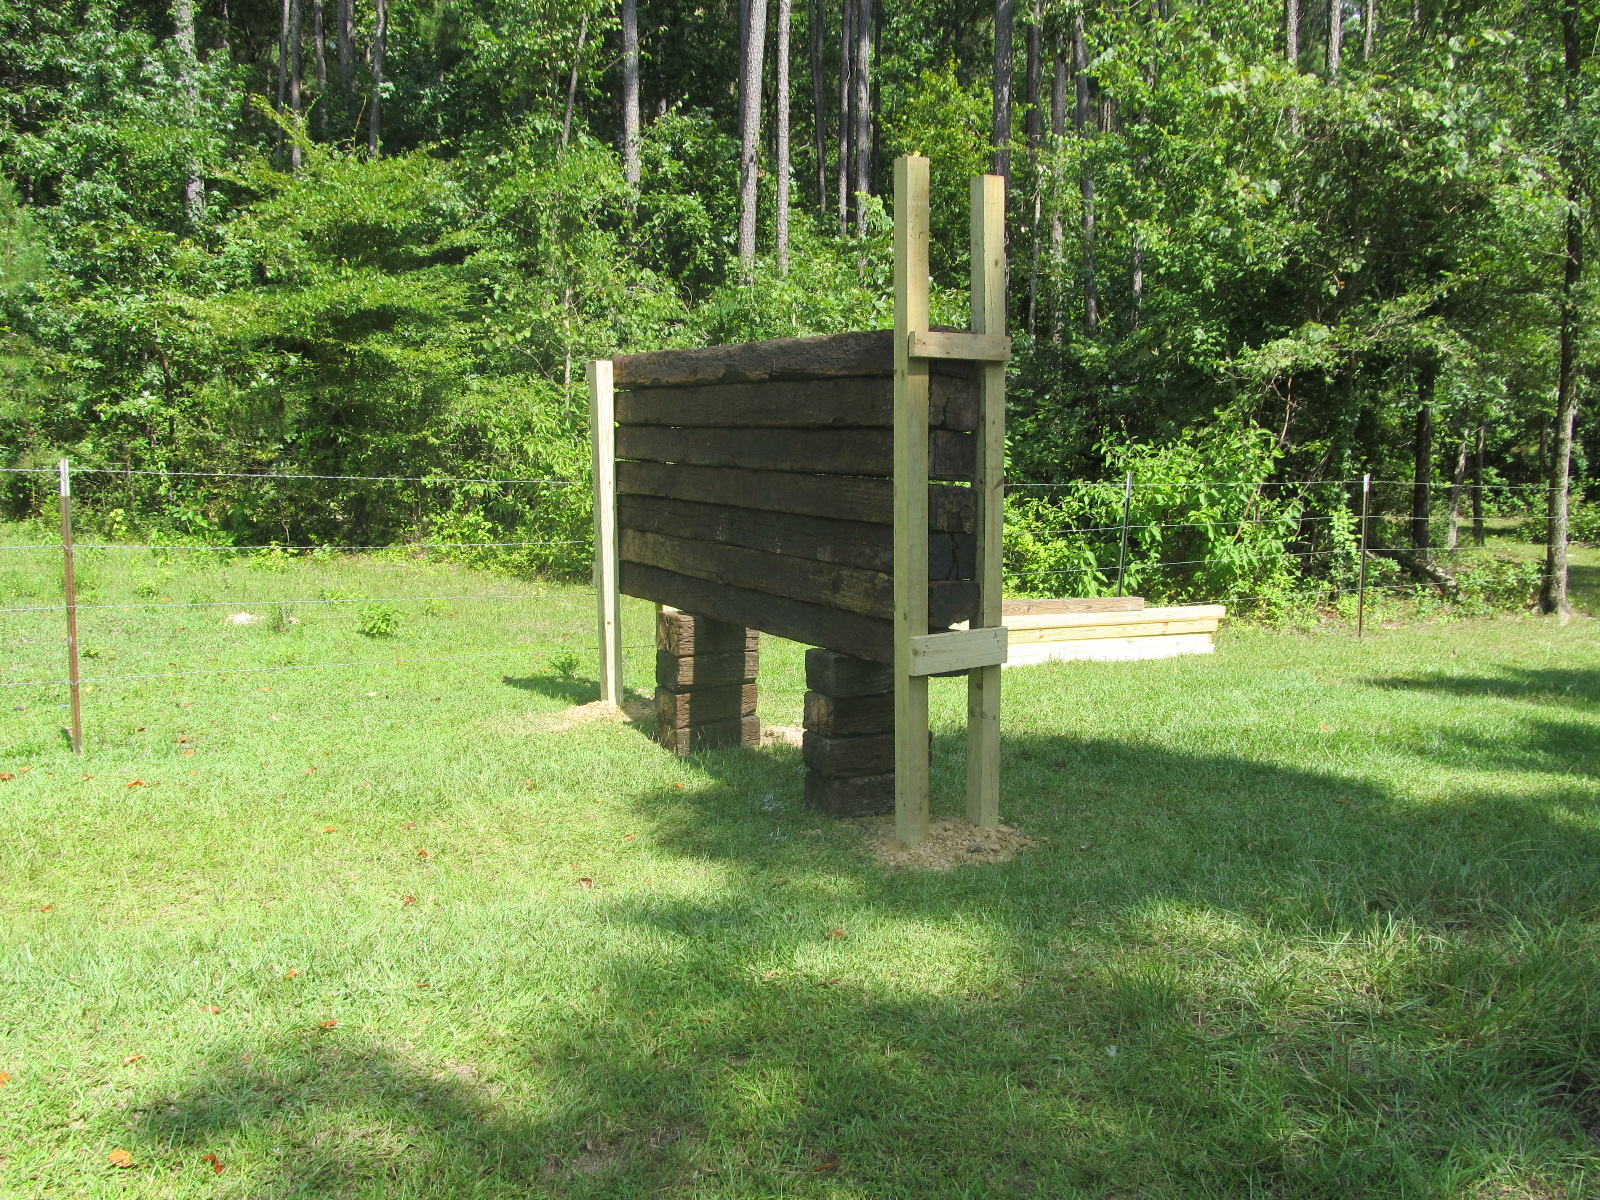 backstop for pistol range home mississippi gun owners